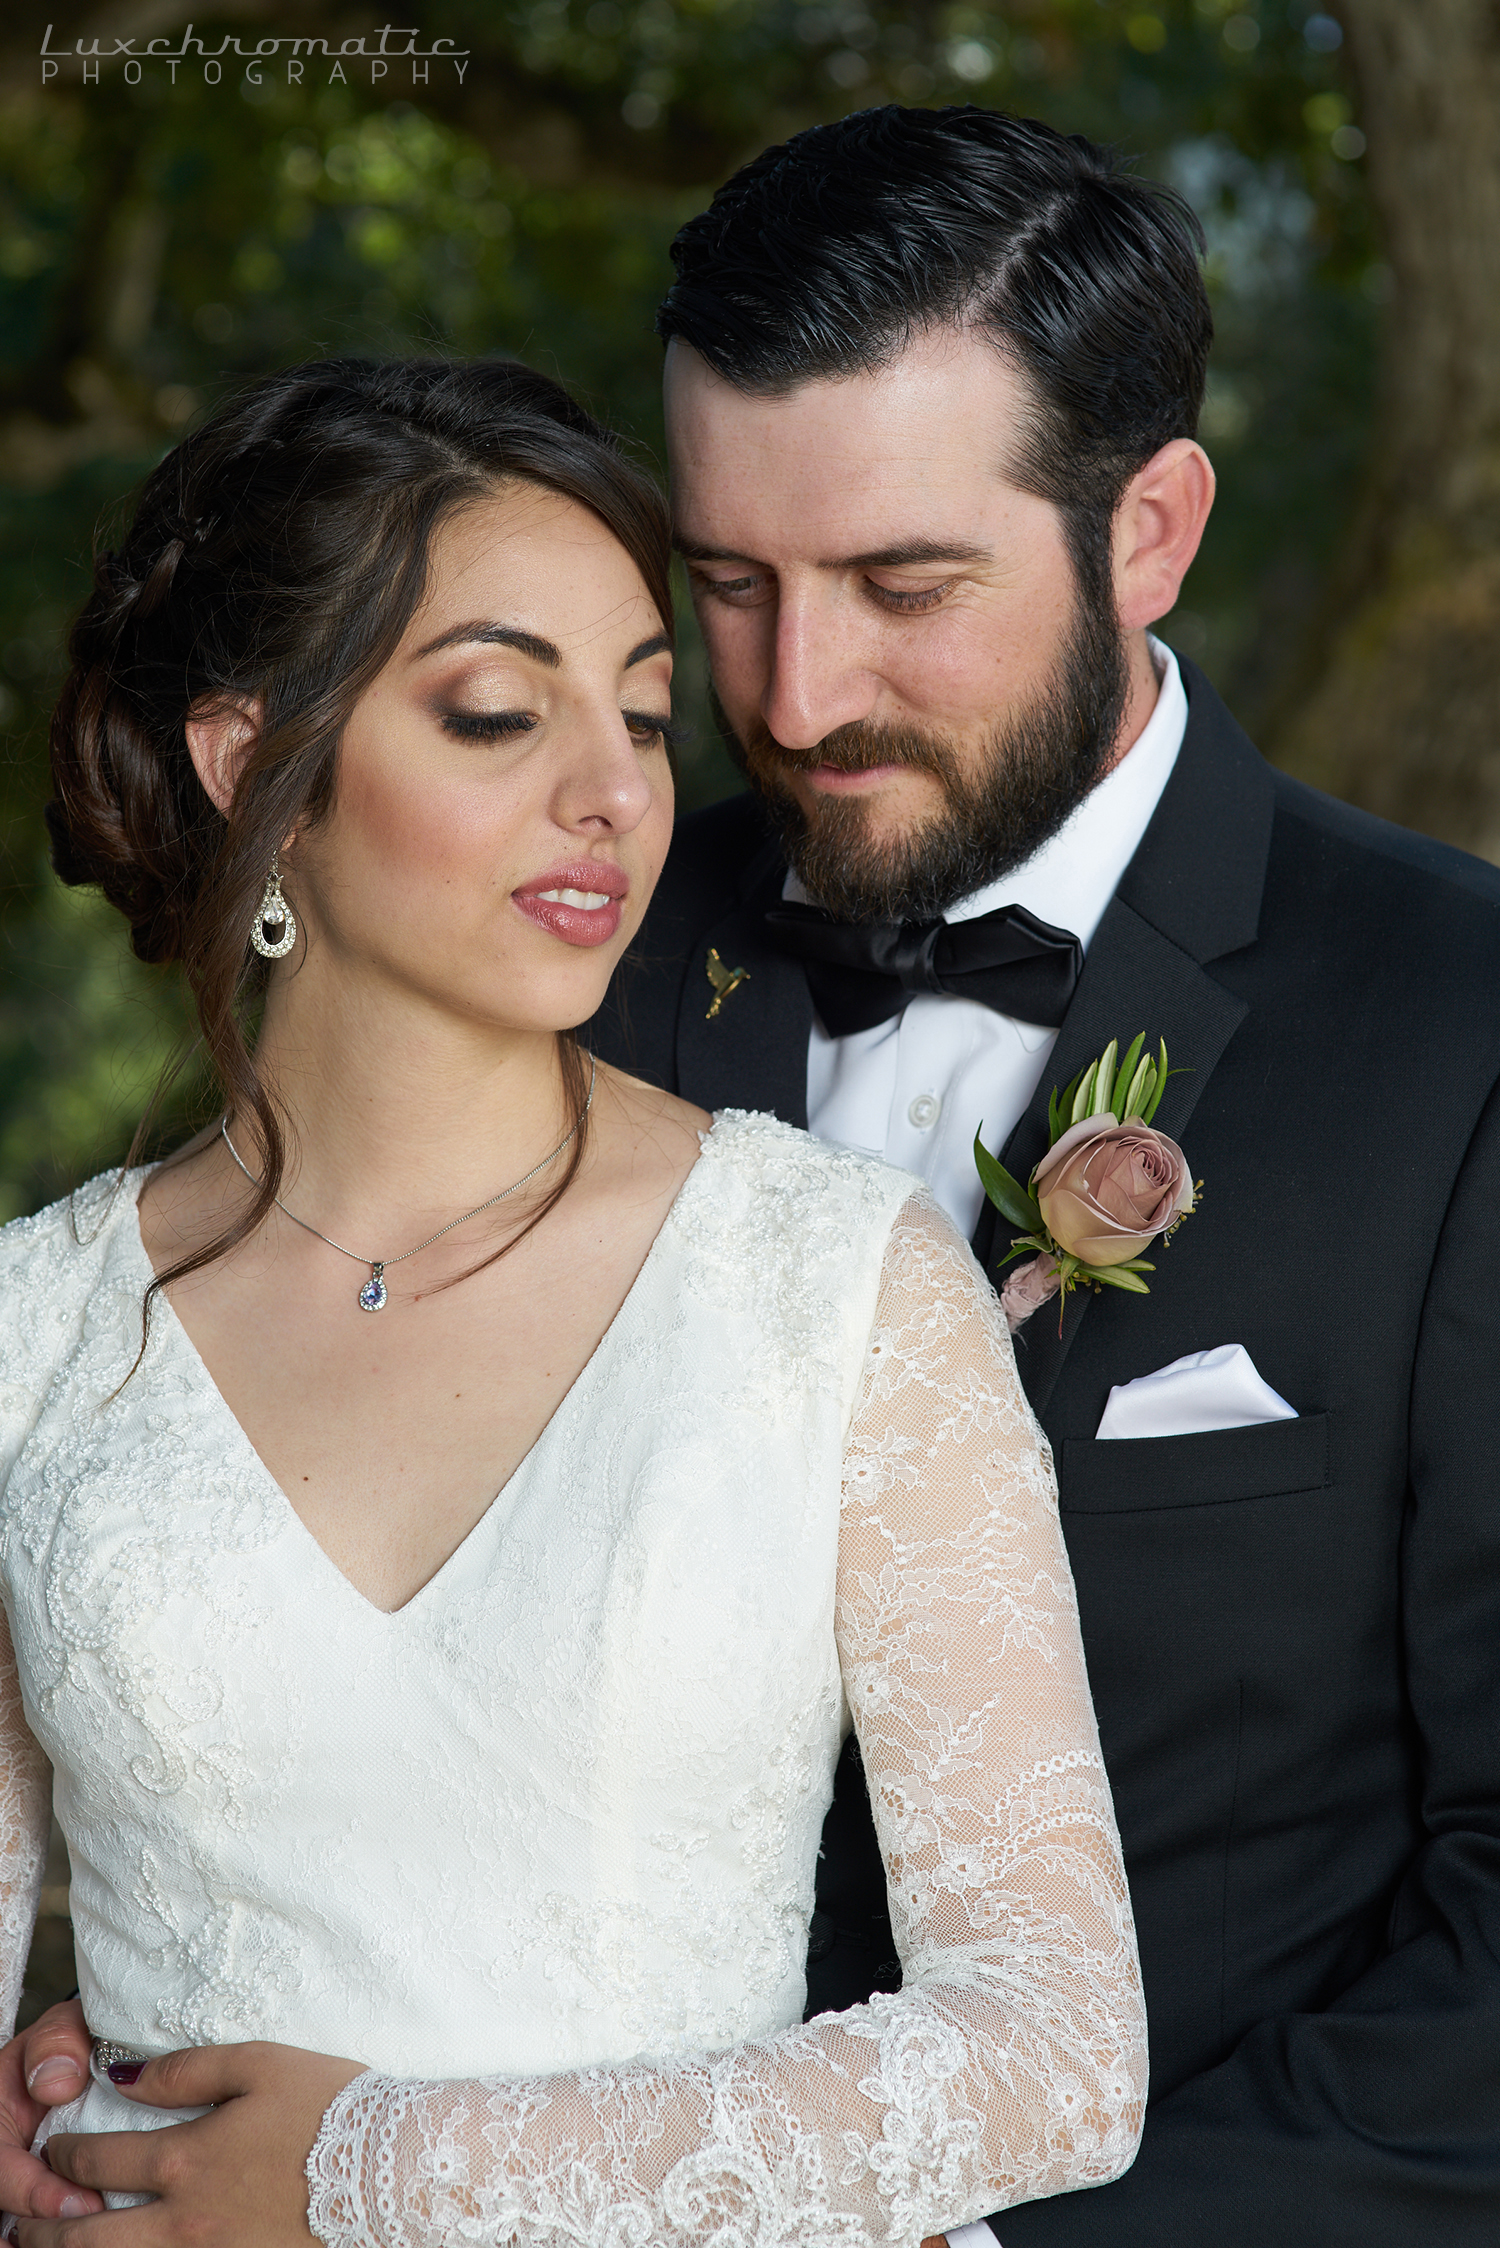 070817_Steph_Sil-San-Francisco-Bay-Area-Carmel-Valley-Monterey-Bay-California-Wedding-Los-Laureles-Lodge-Bride-Gown-Dress-Groom-Engaged-Knot-Bridesmaids-Luxchromatic-Portrait-Sony-Alpha-a7Rii-Interfit-Profoto-Best-Photographer-Photography-0216 copy.jpg